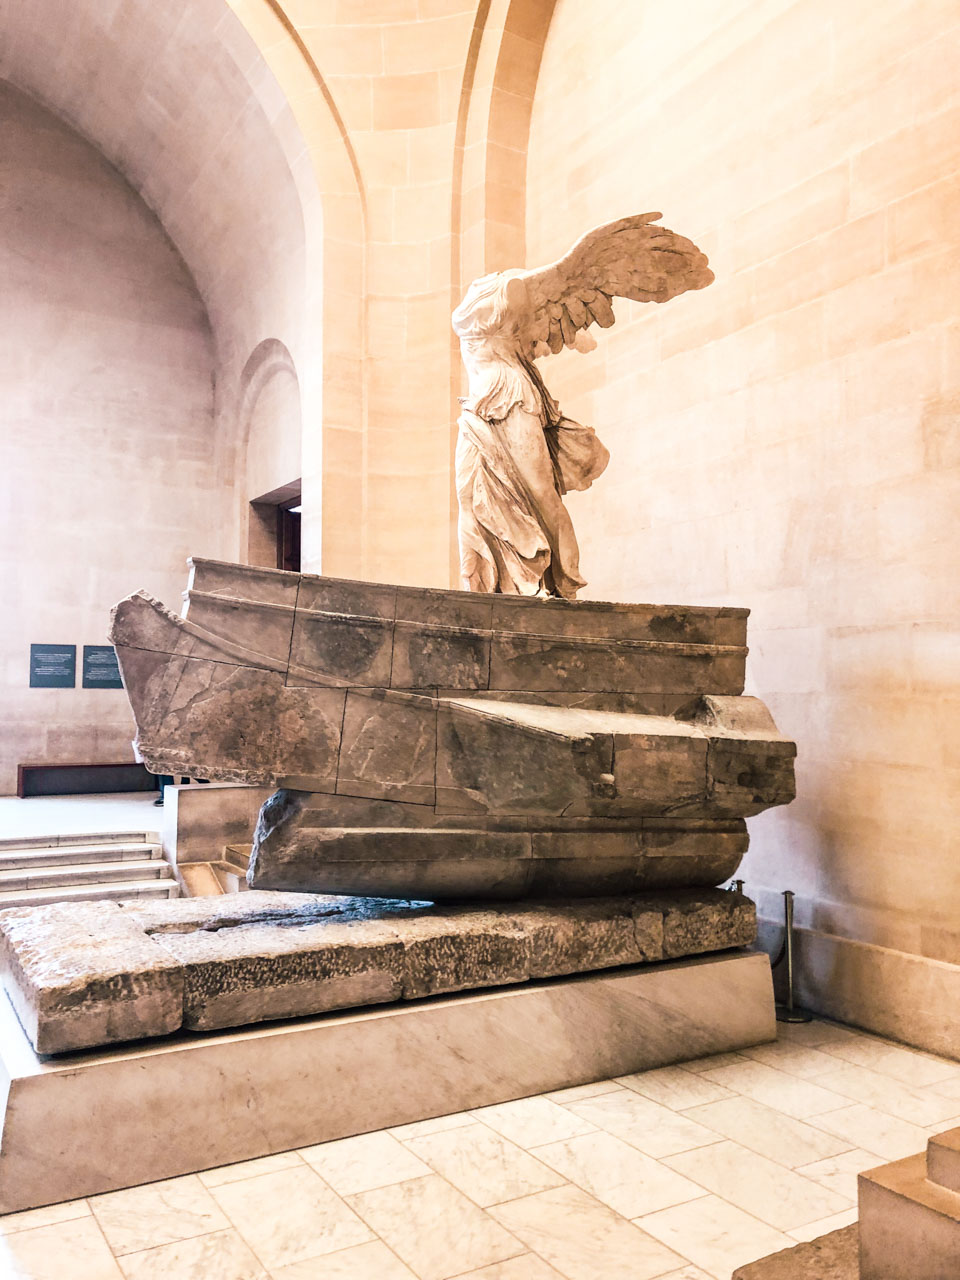 The Winged Victory of Samothrace, also called the Nike of Samothrace, on display at the Louvre in Paris, France